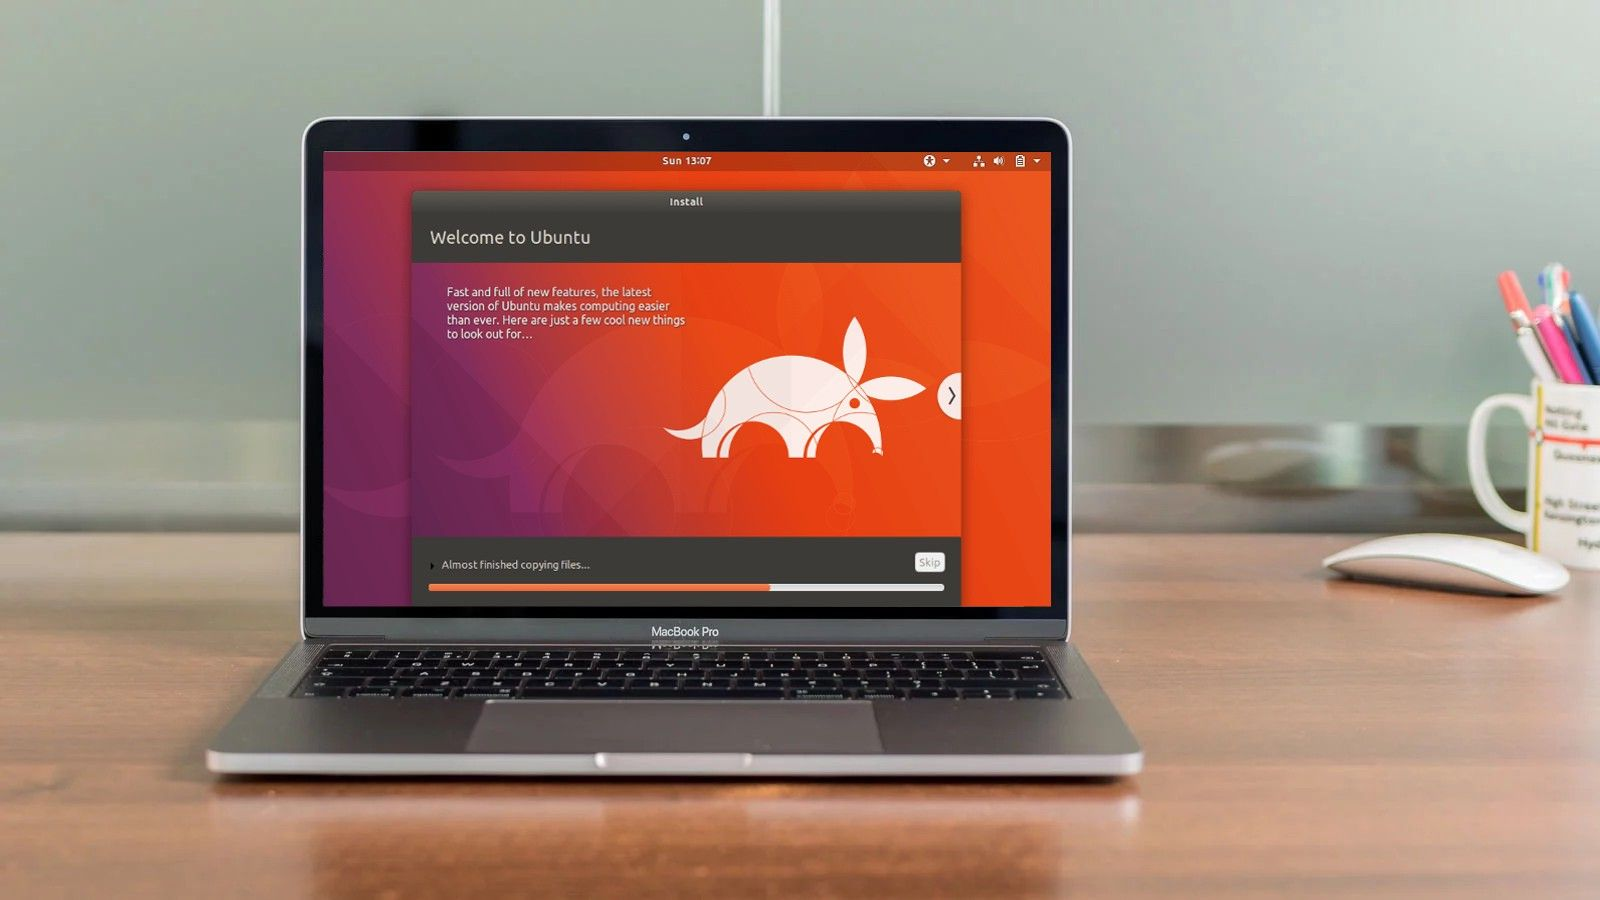 How To Fix Windows Pc Or Mac For Ubuntu Linux Installation Linux Used Macbook Pro Development